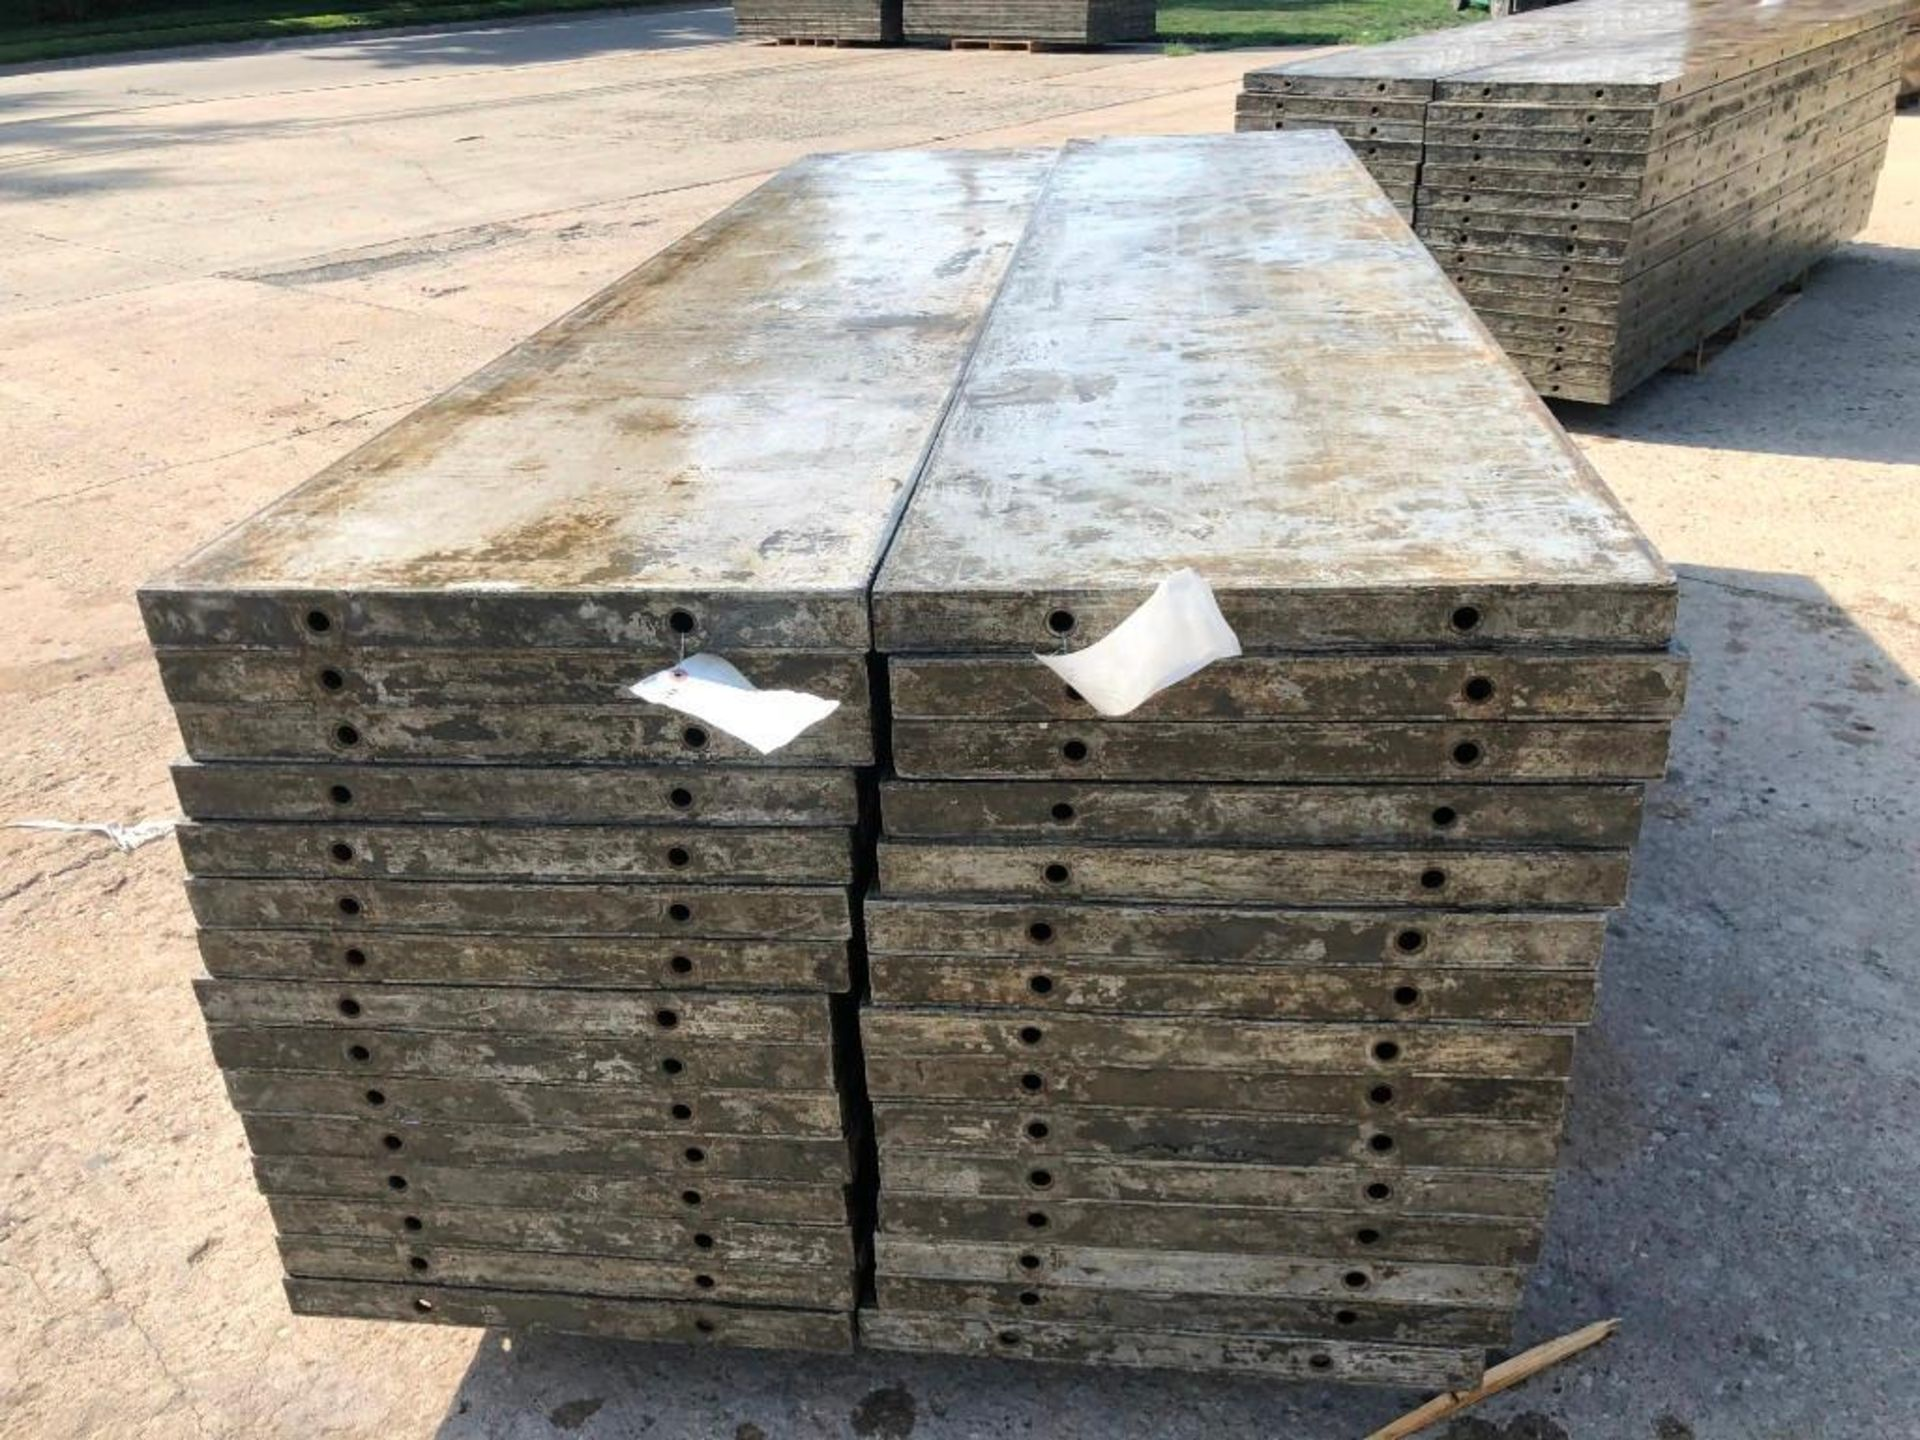 Lot 142 - (30) 2' x 9' Wall-Ties Aluminum Concrete Forms, Laydowns, Smooth 6-12 Hole Pattern. Located at 301 E